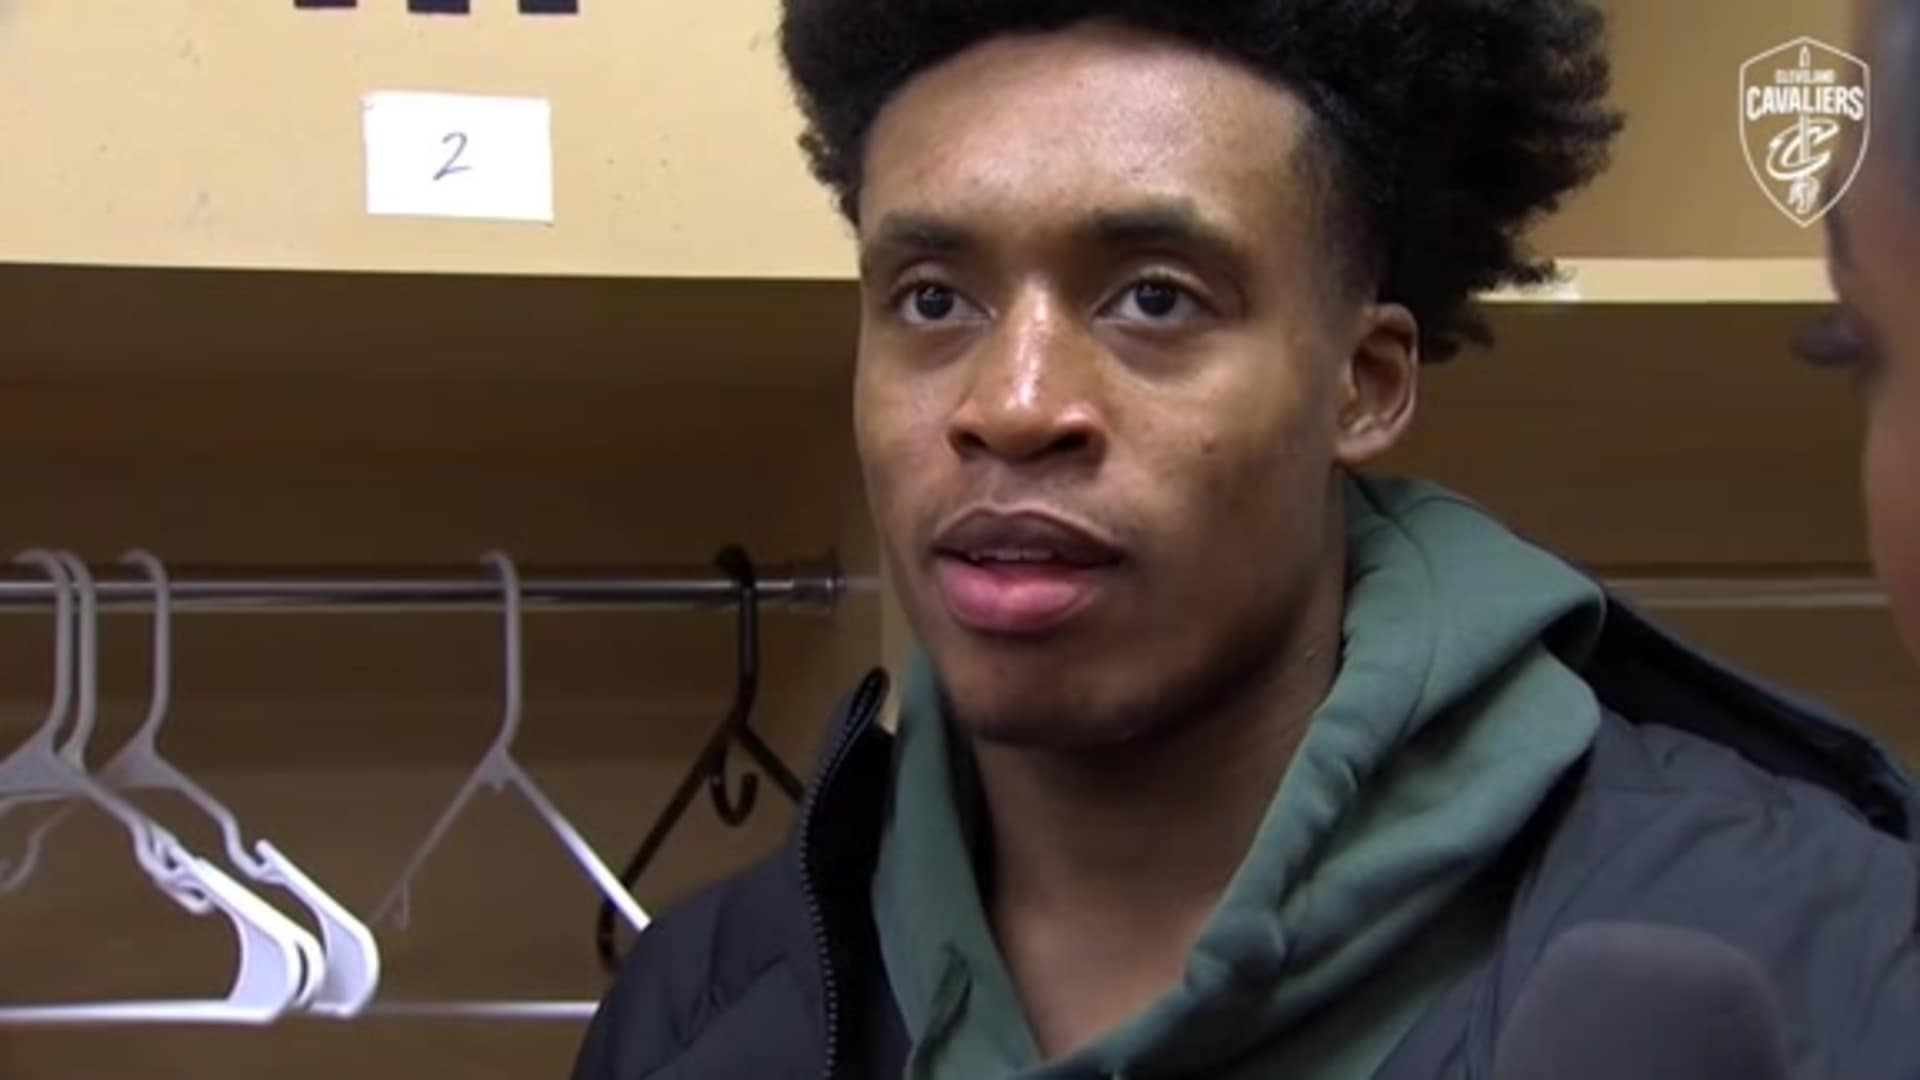 Cavs at Grizzlies Postgame: Collin Sexton